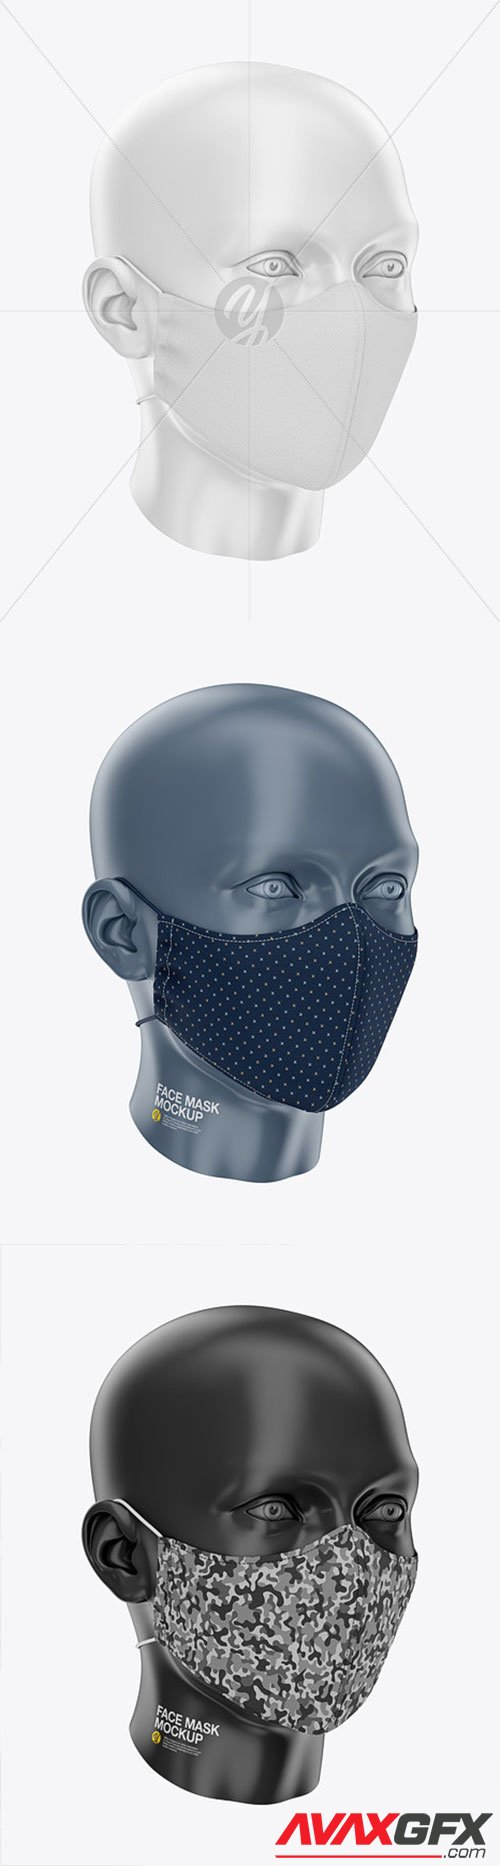 Face Mask with Elastic Cord and Stopper - Front Half-Side View 61433